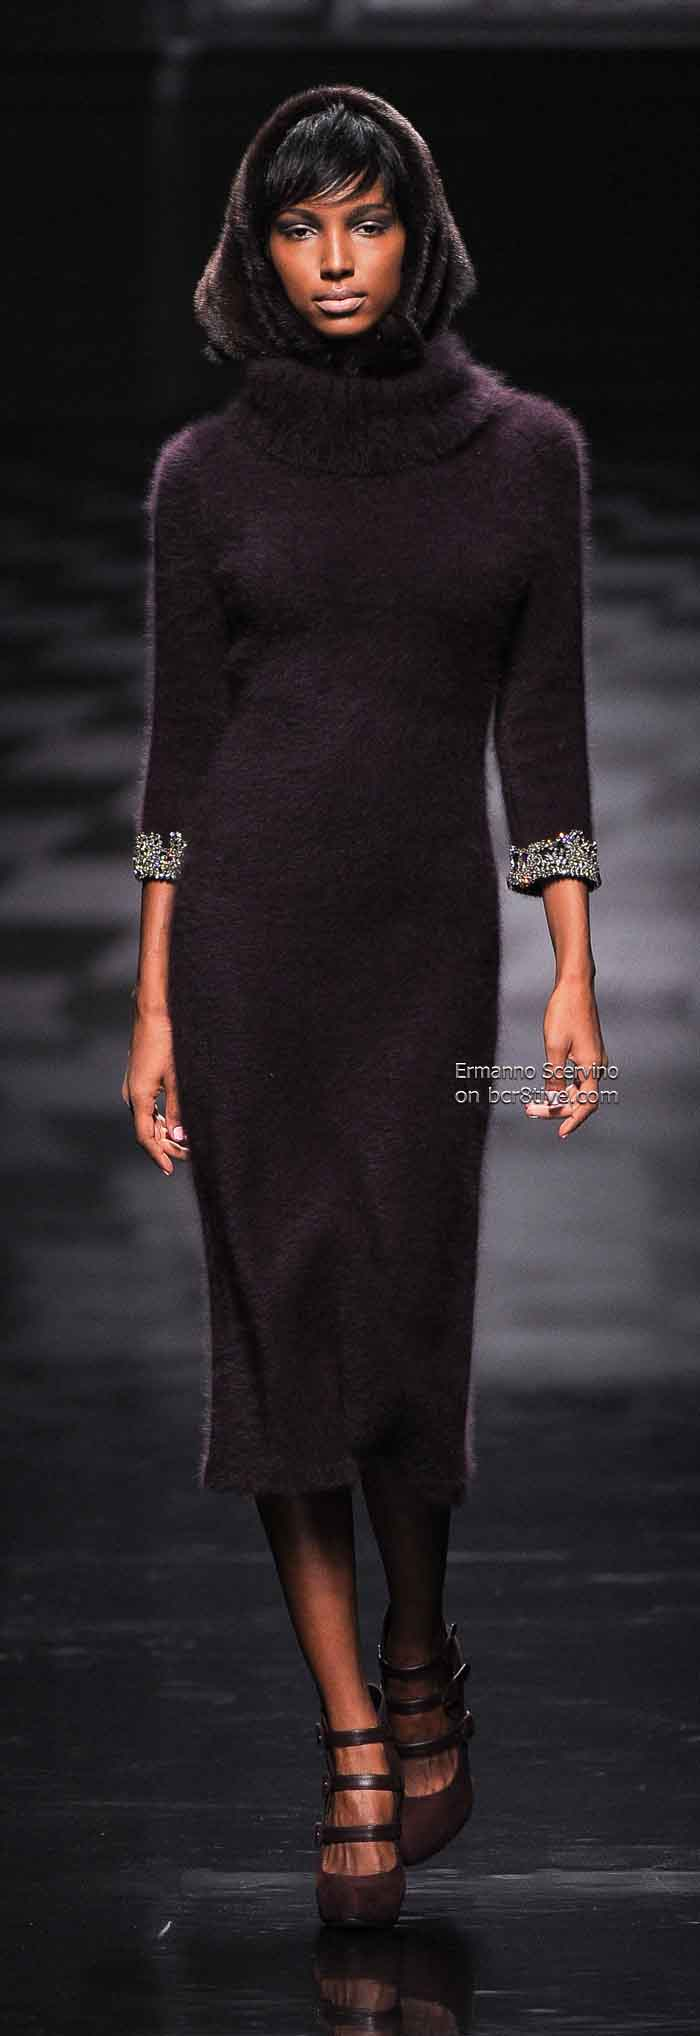 Ermanno Scervino Fall Winter 2013-14 RTW